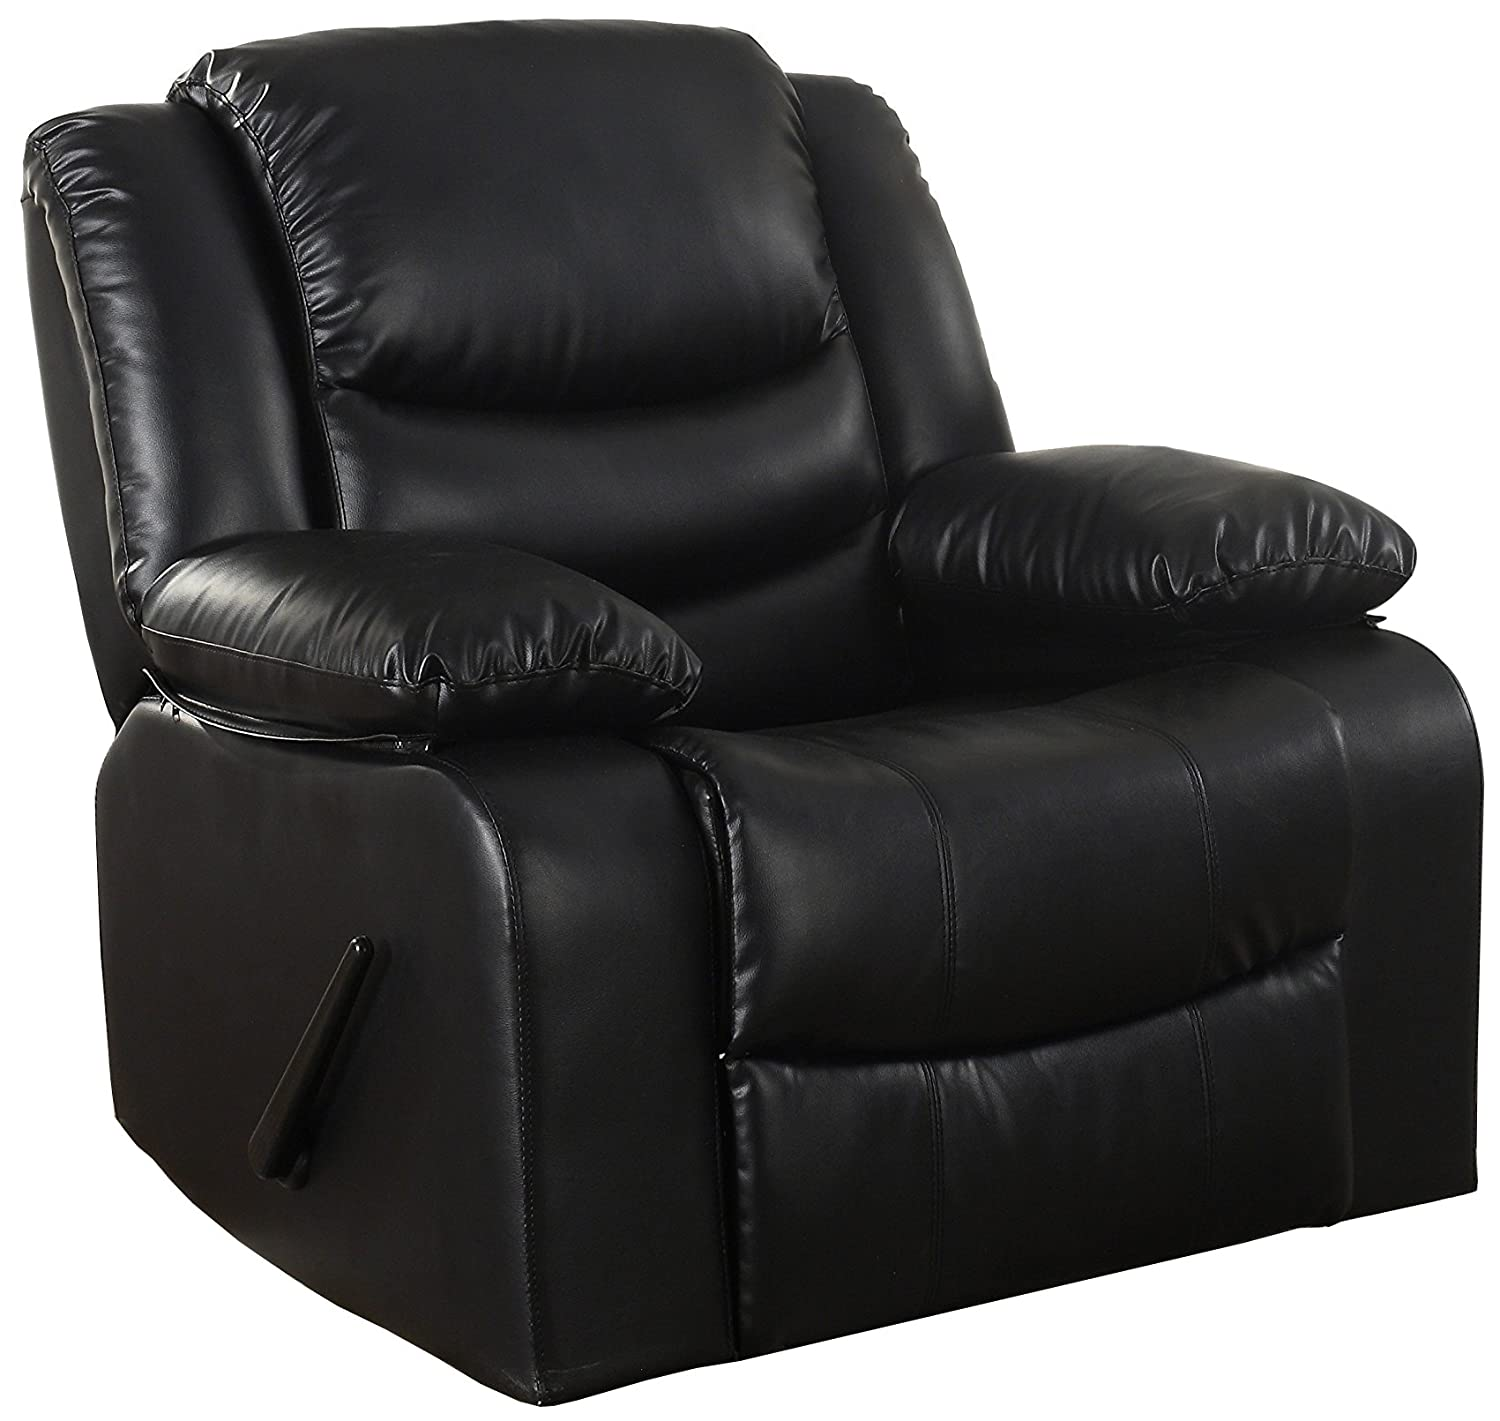 p creations reclining recliner leather barrington sofa product furniture description